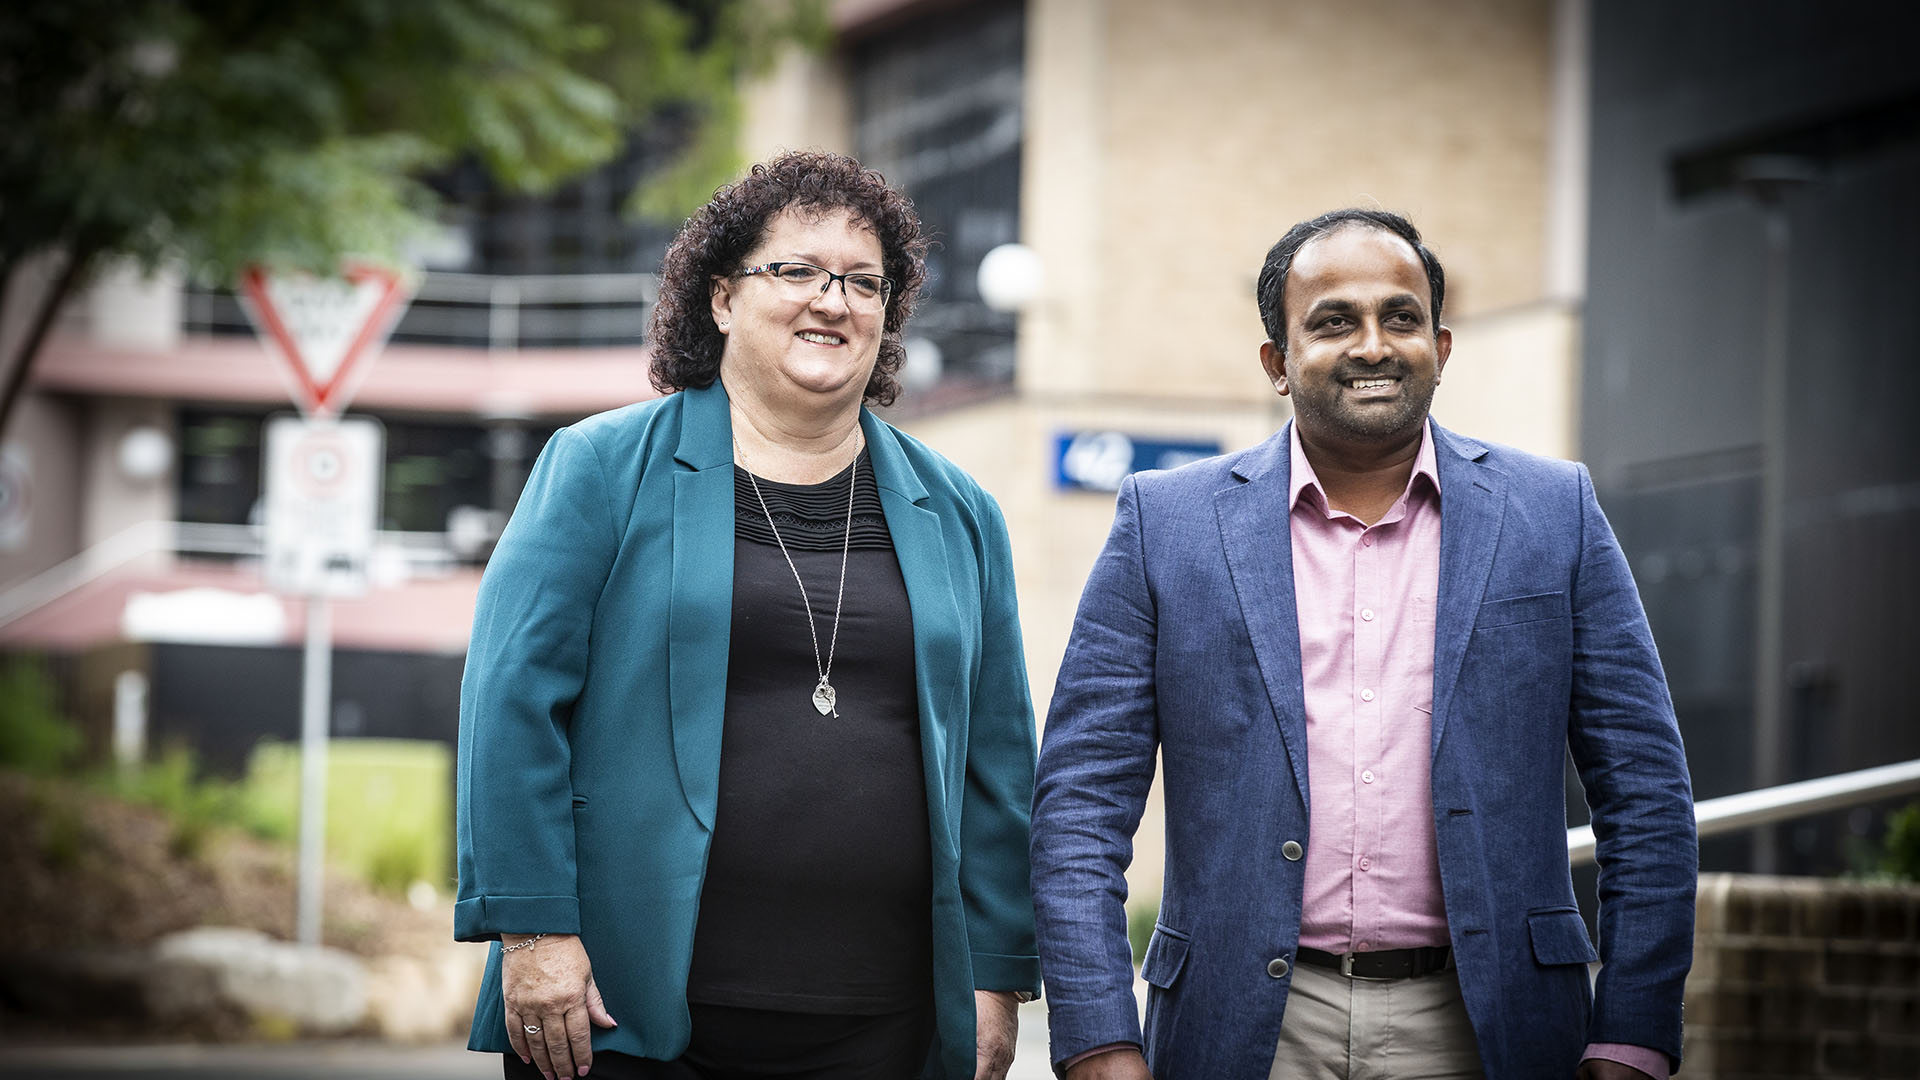 SMART Infrastructure Facility COO Tania Brown and researcher Dr Rohan Wickramasuriya